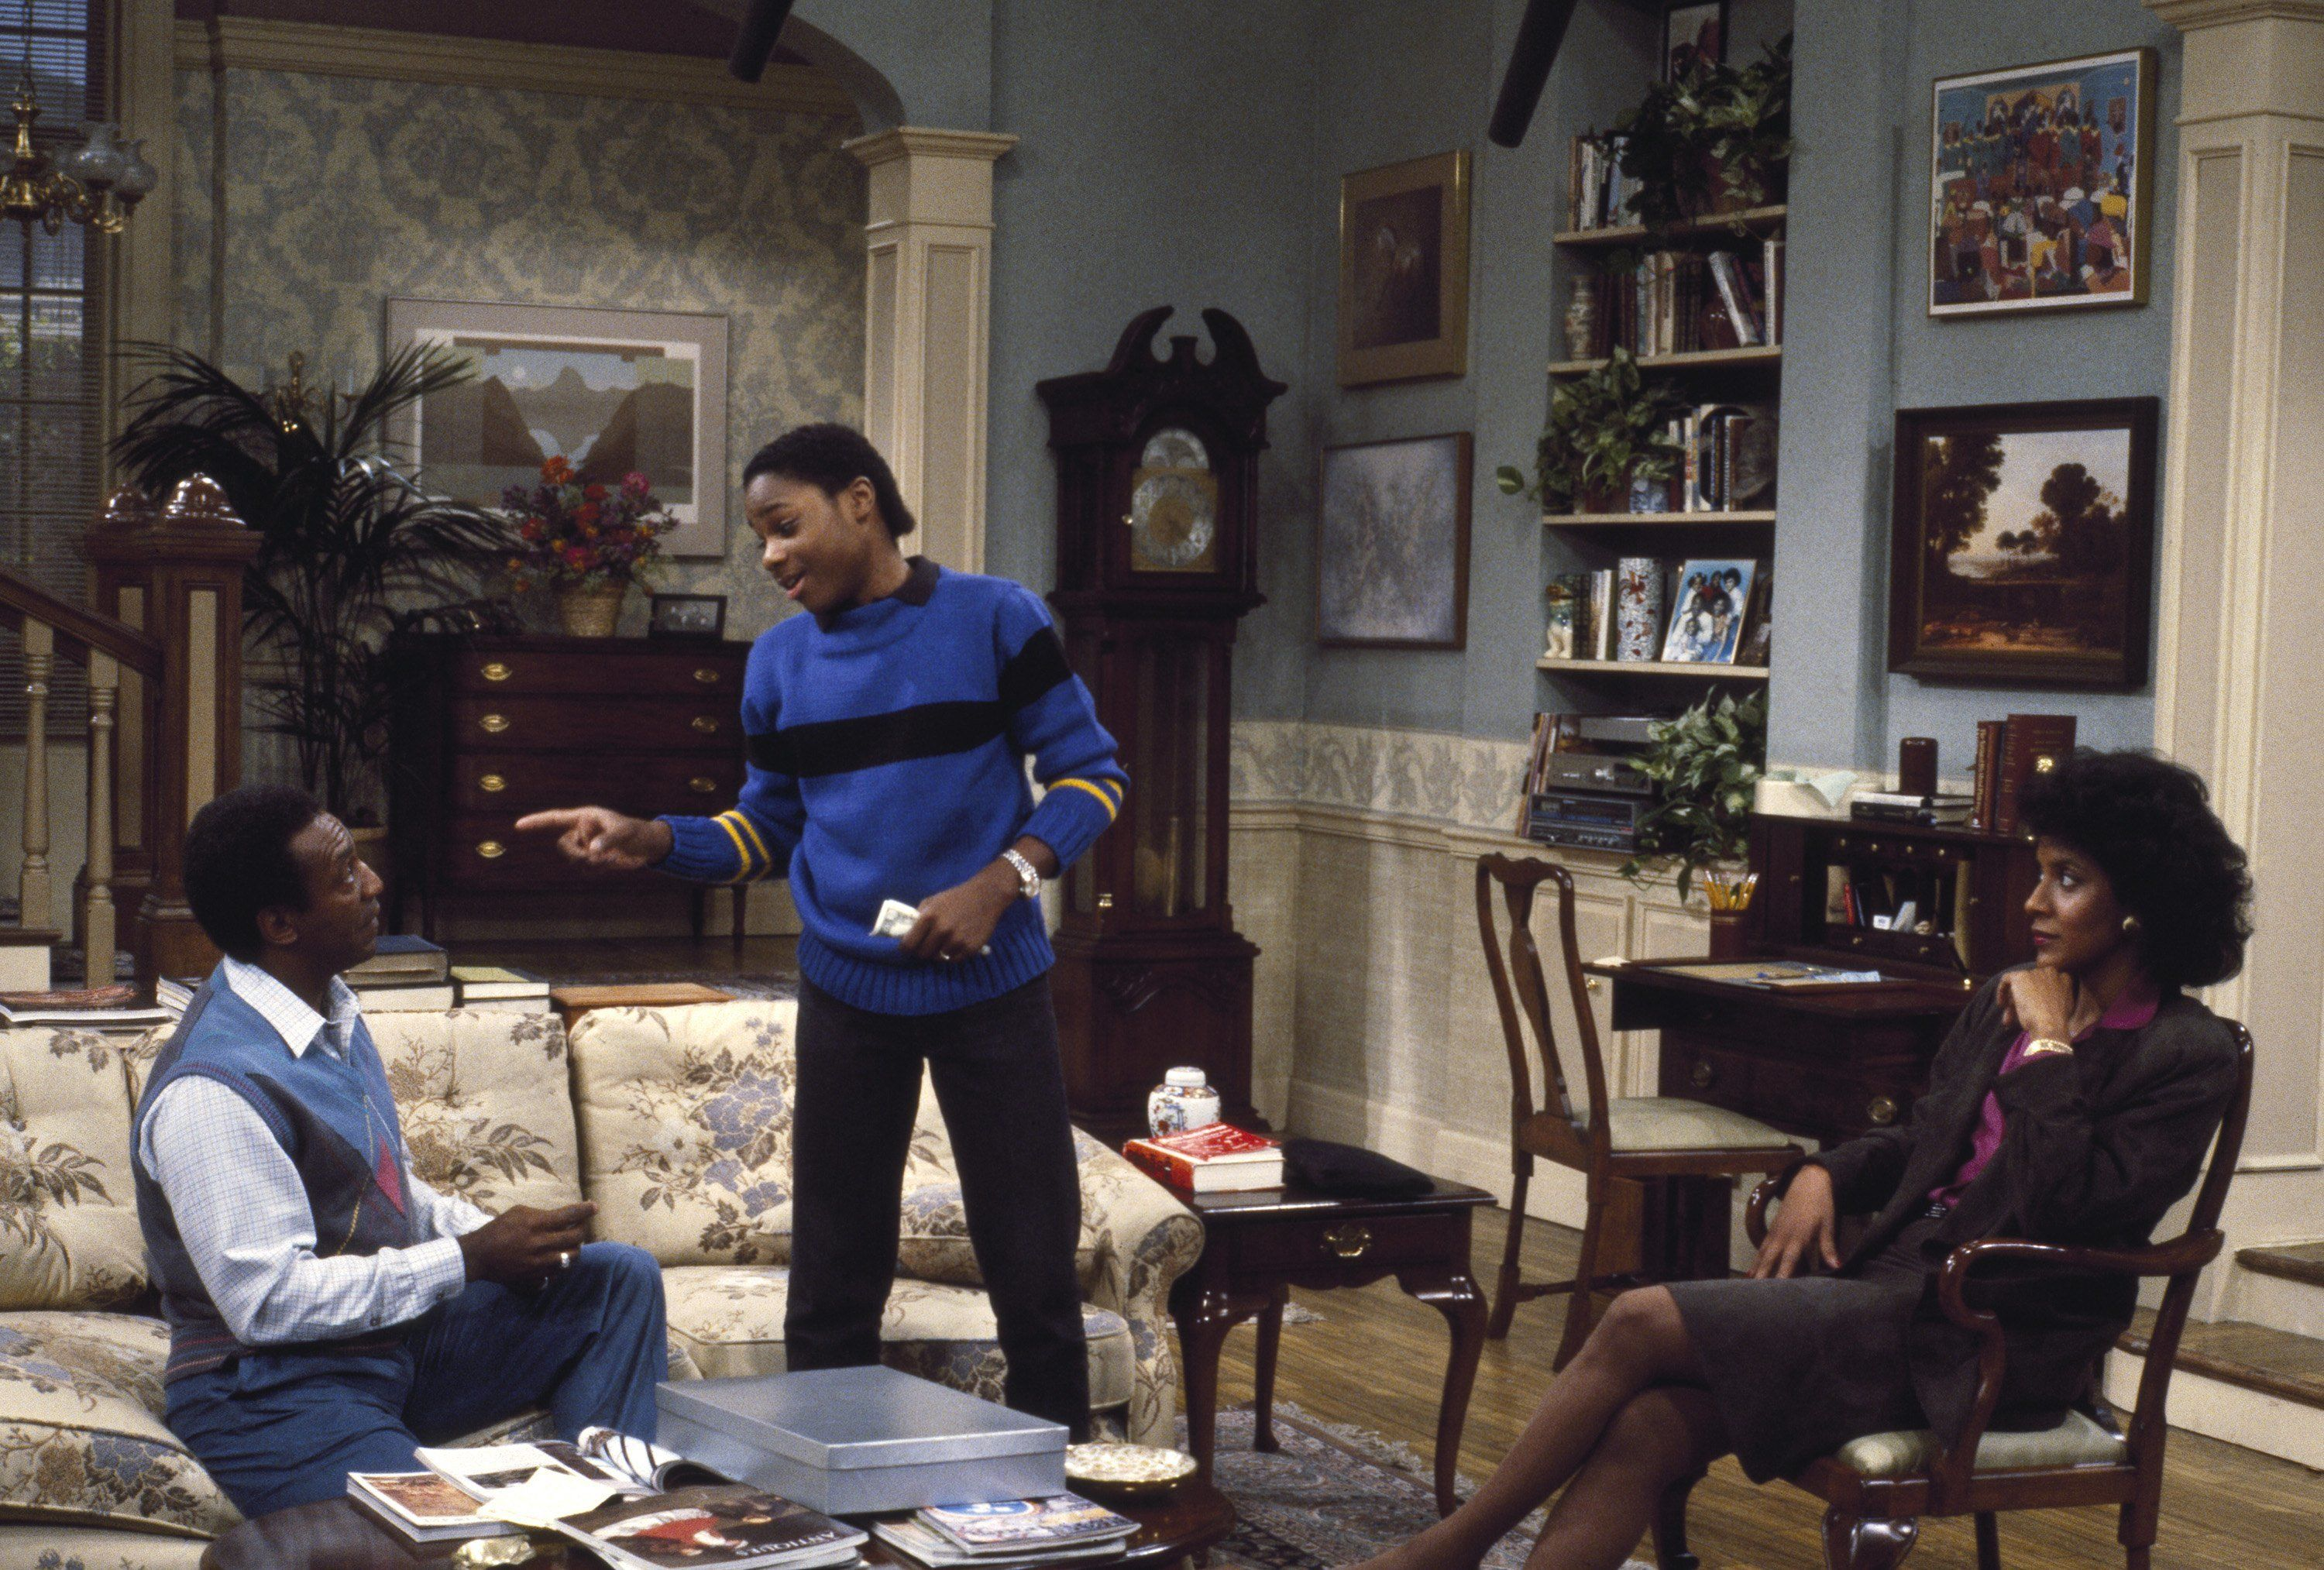 THE COSBY SHOW -- Pictured: (l-r) Bill Cosby as Dr. Heathcliff 'Cliff' Huxtable, Malcolm-Jamal Warner as Theodore 'Theo' Huxtable, Phylicia Rashad as Clair Hanks Huxtable -- Photo by: R. M. Lewis Jr./NBCU Photo Bank